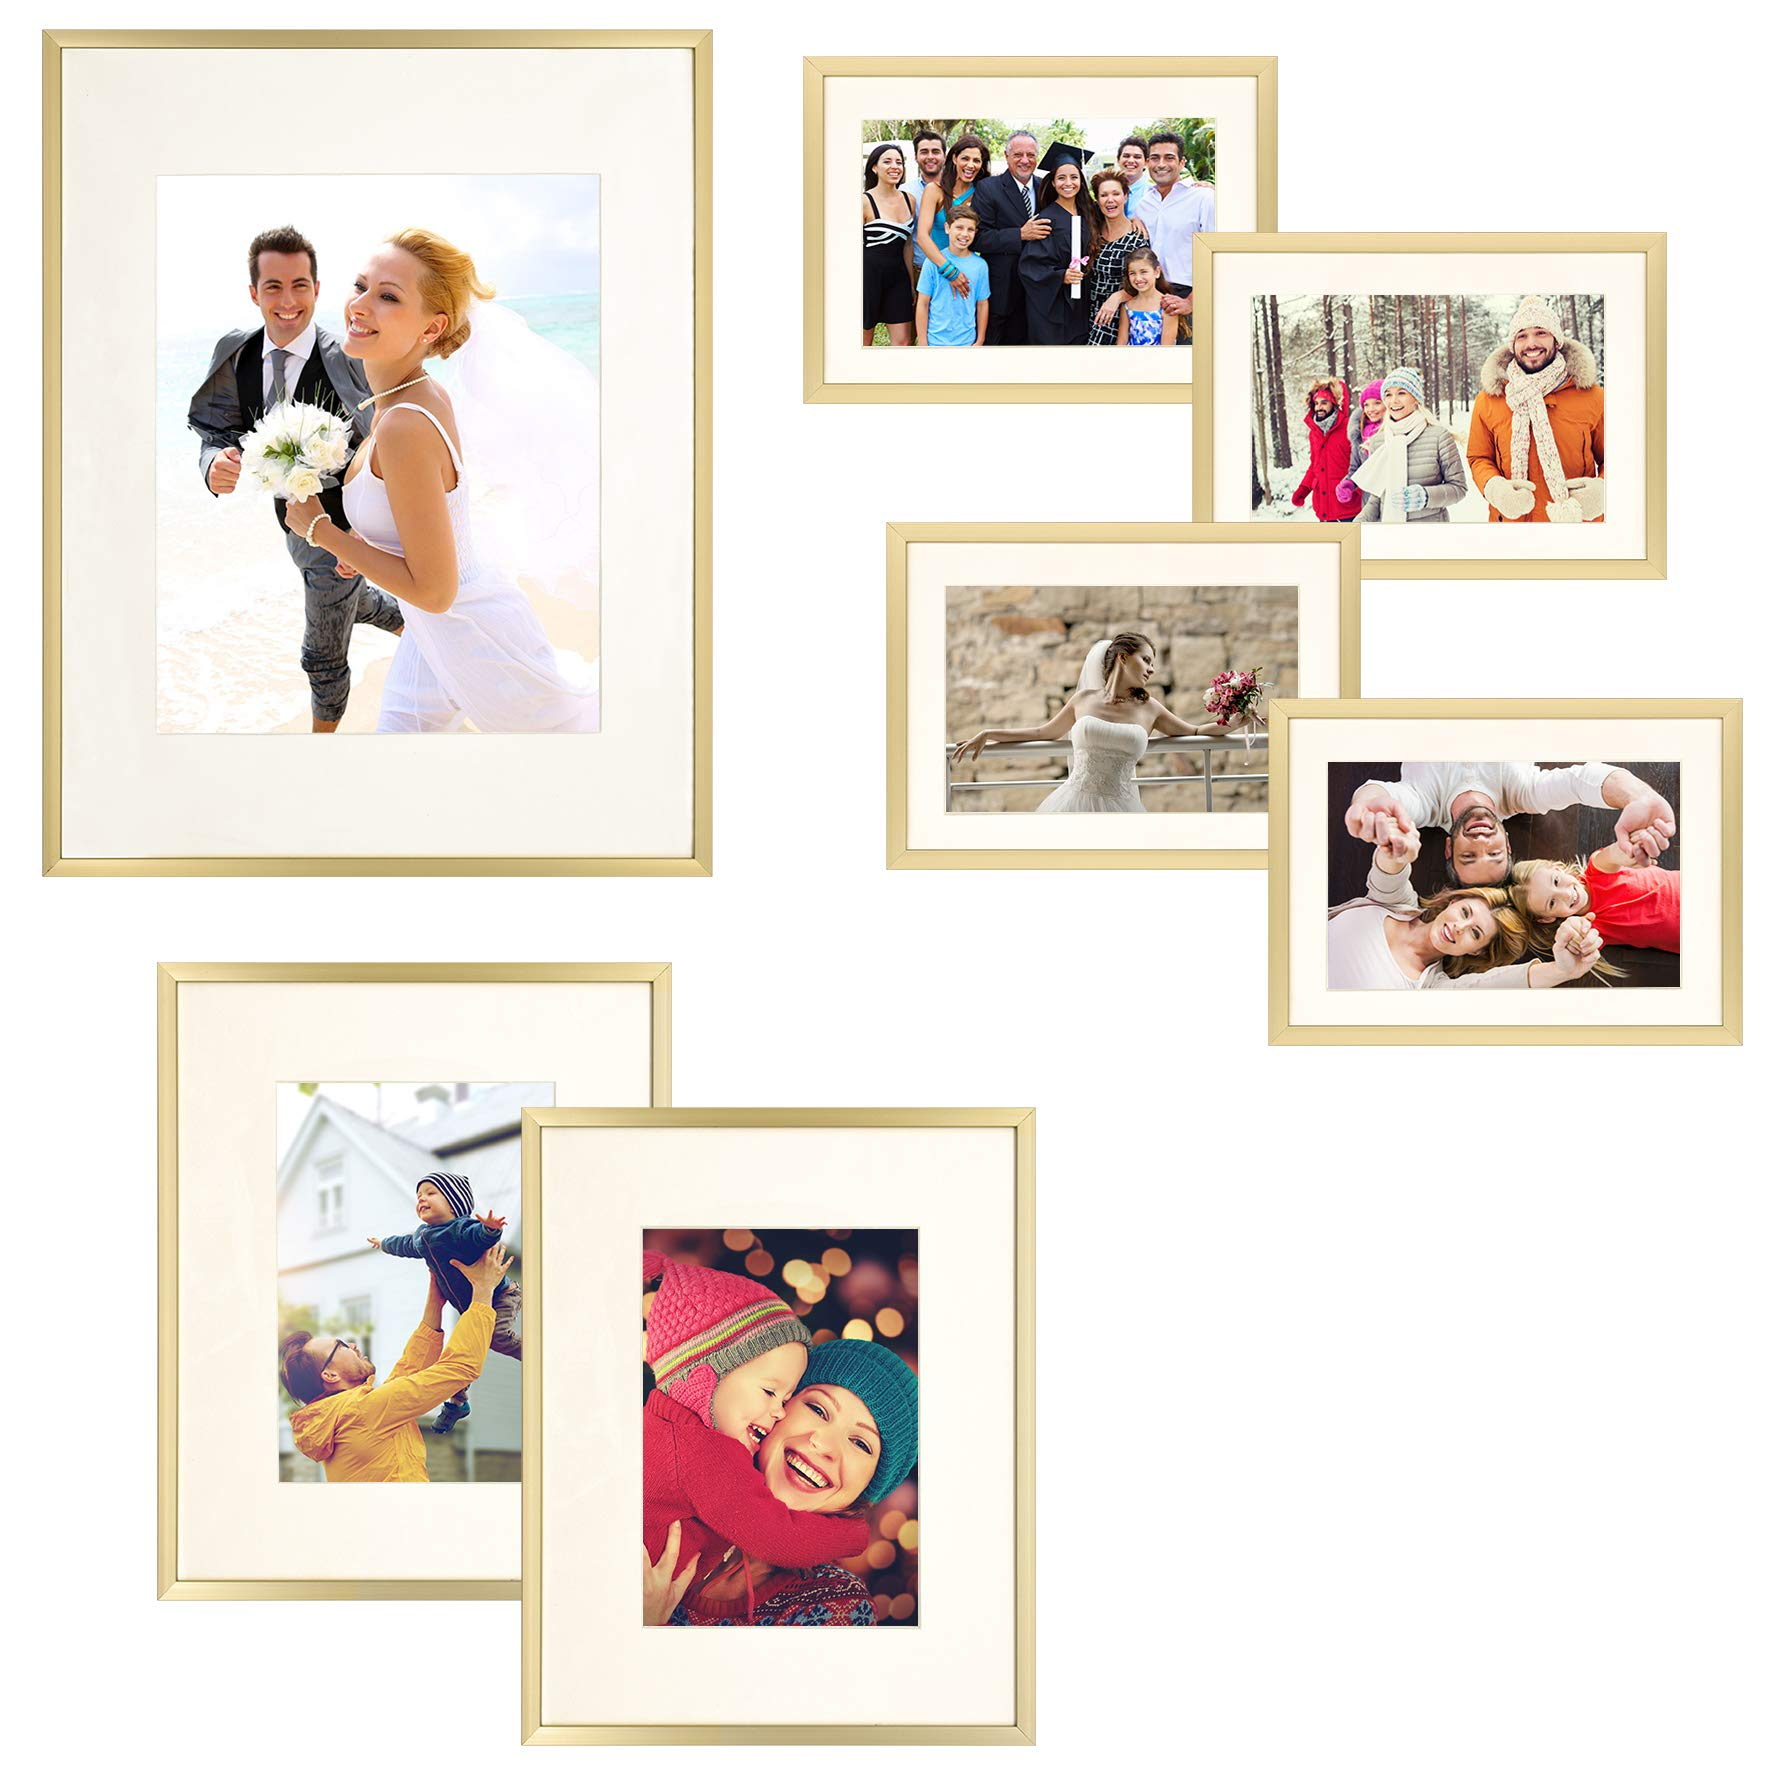 Frametory 7 Piece Gold Aluminum Wall Frame with Ivory Color Mat Set - Four 5x7 - Two 8x10 - One 11x14 - Real Glass - Swivel Tabs - Sawtooth Hangers (Gold) by Frametory